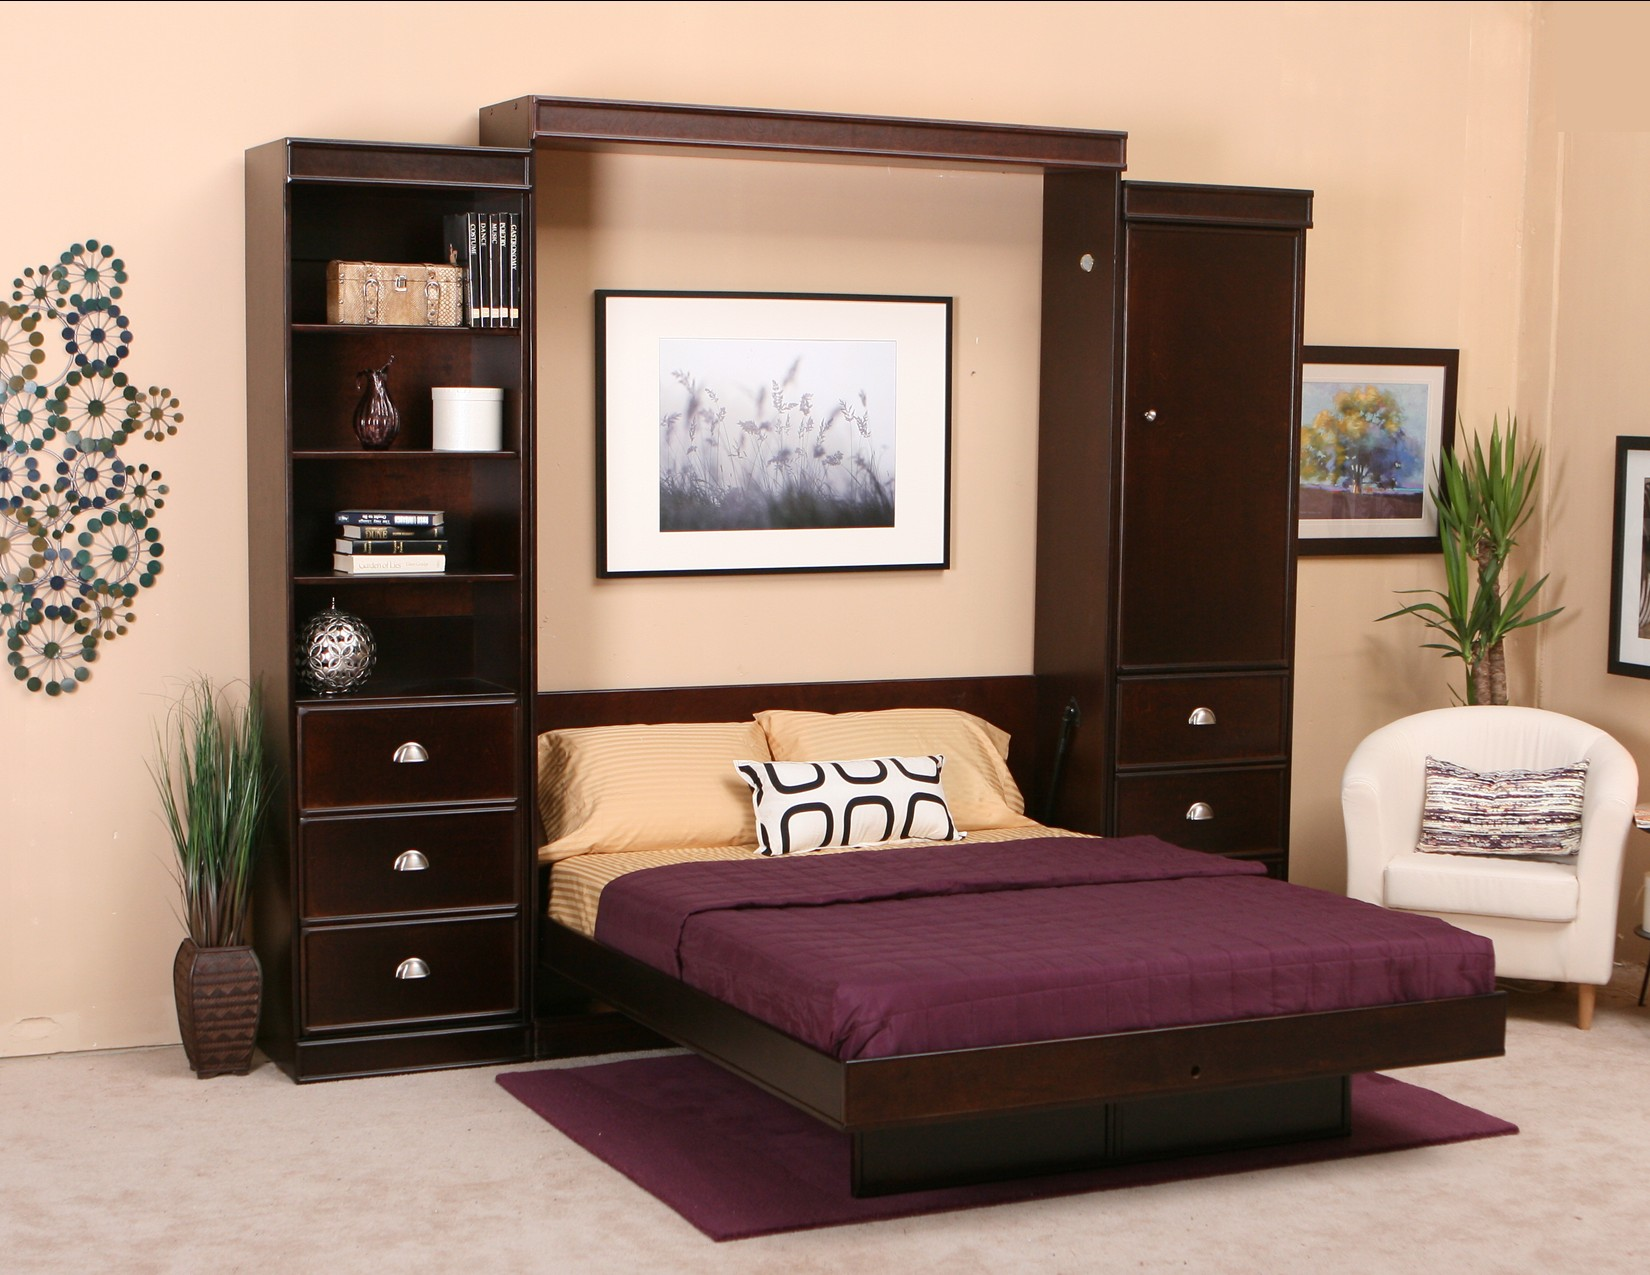 Bedroom Set Jysk